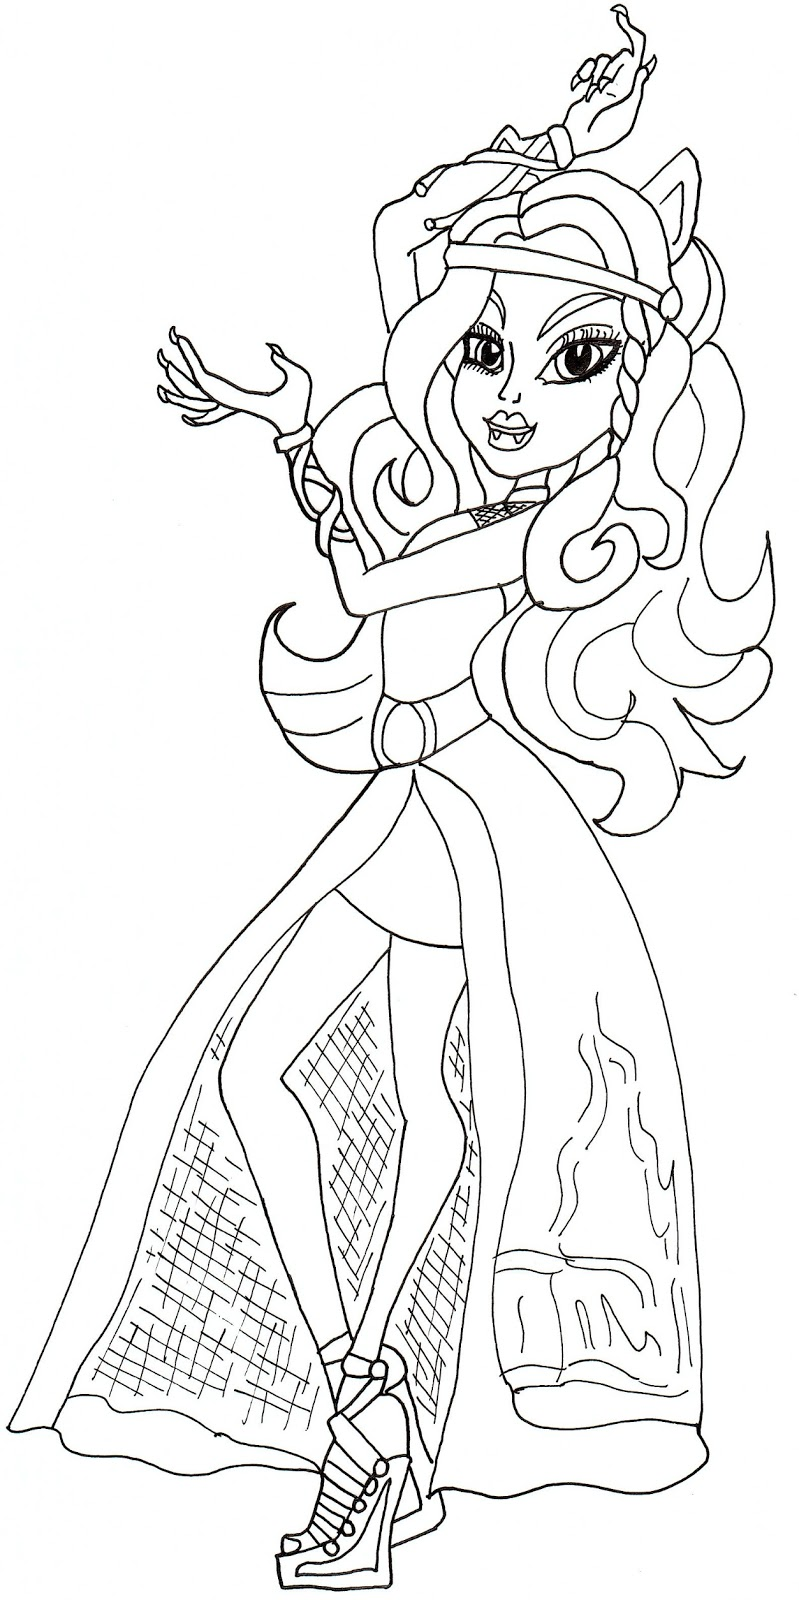 Free Printable Monster High Coloring Pages June 2013 Print High Coloring Pages